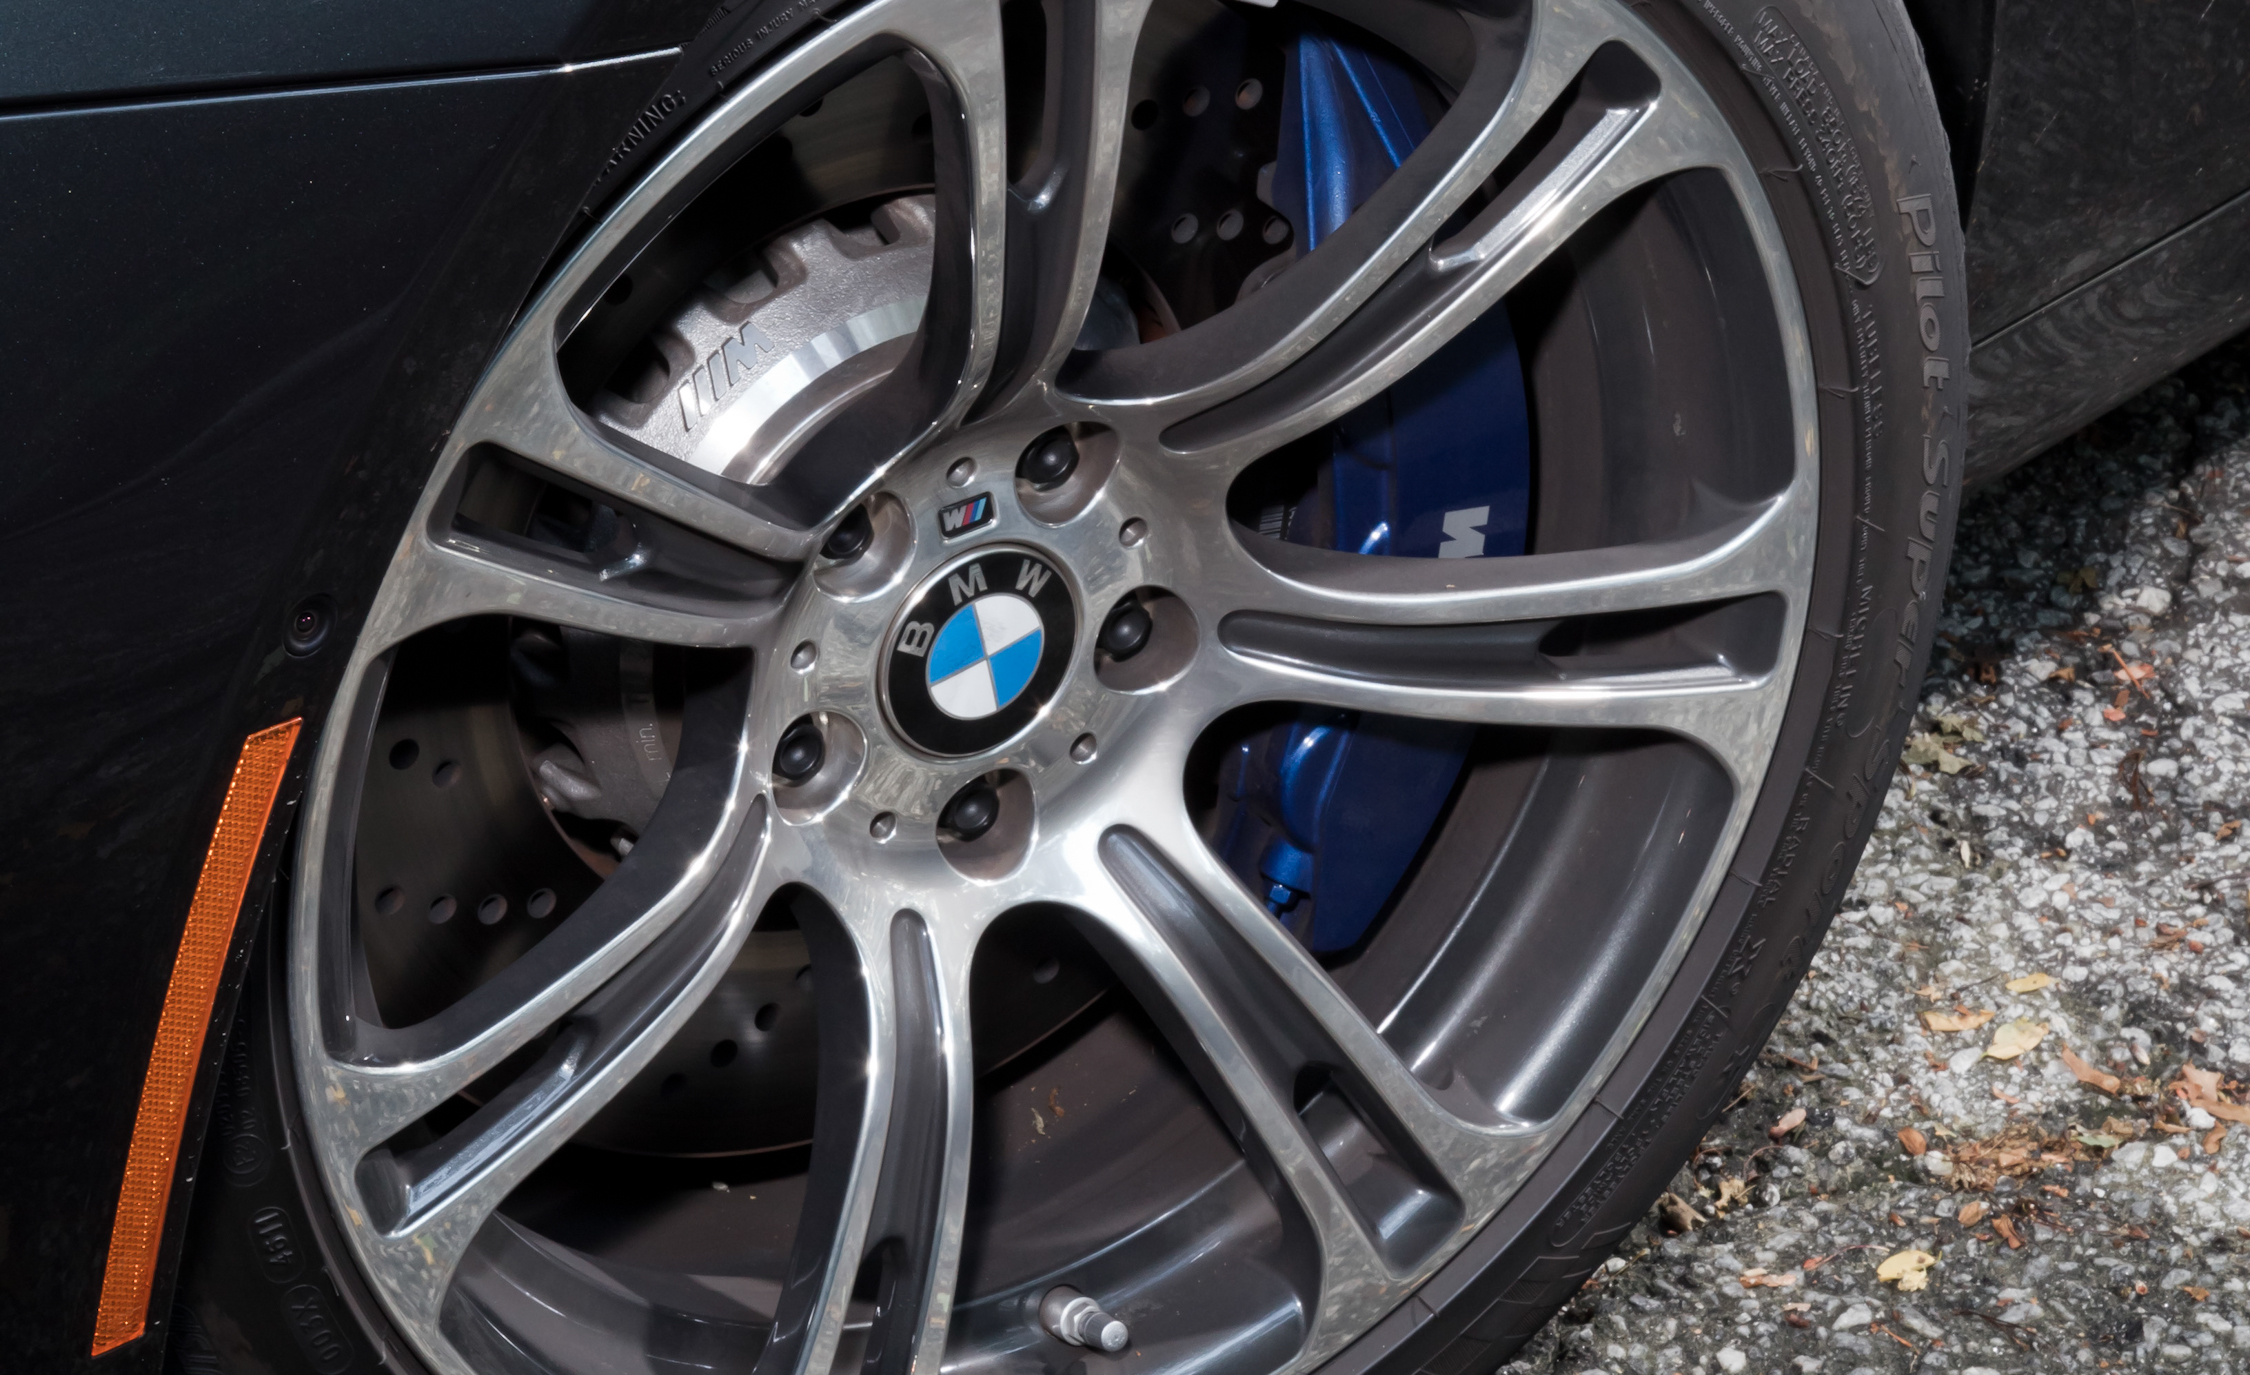 2012 BMW M6 Convertible Exterior View Wheel Velg (Photo 7 of 30)